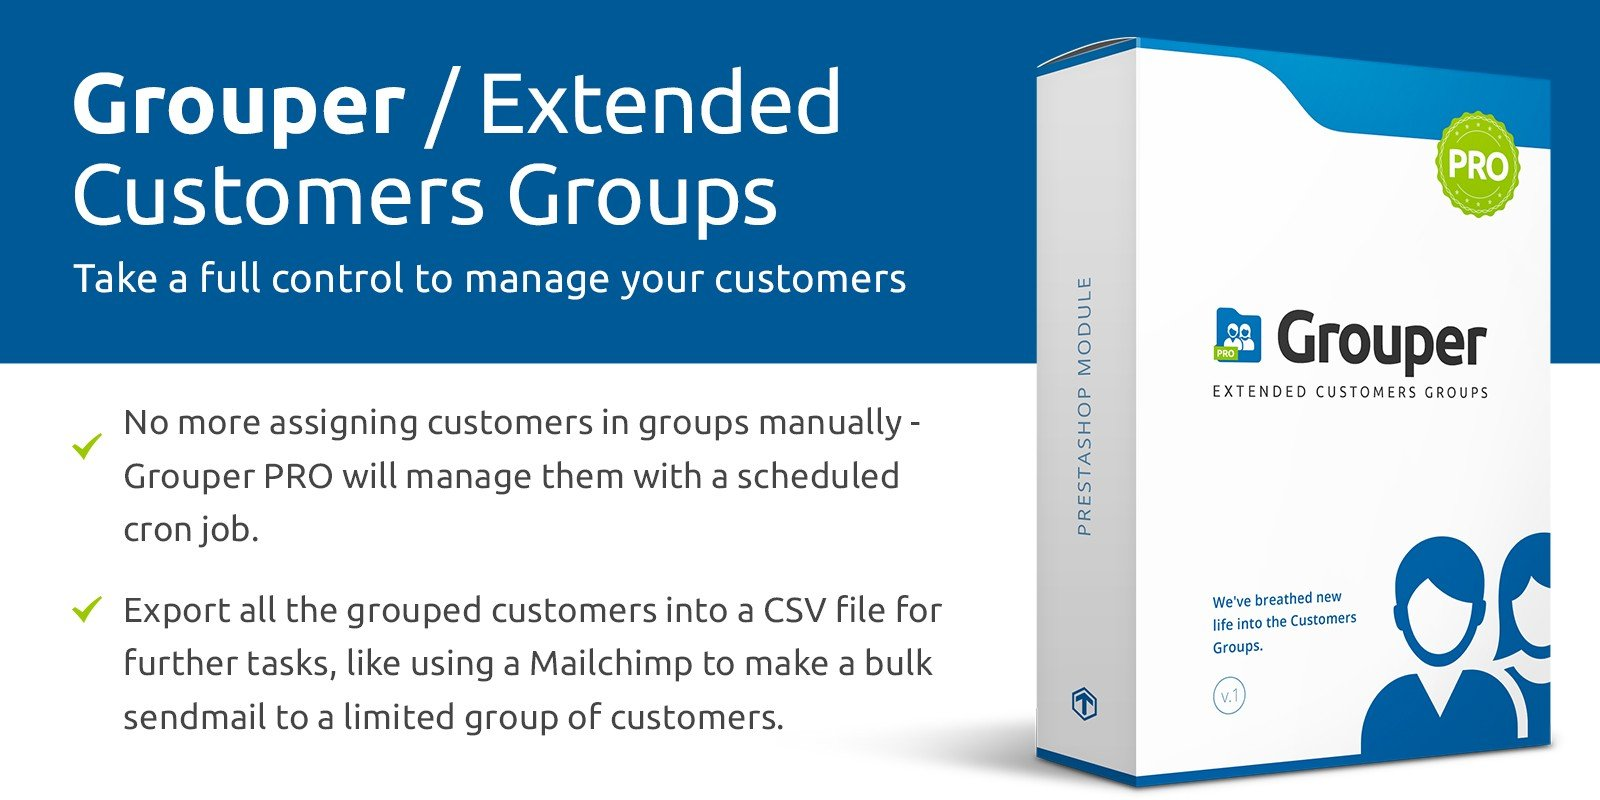 Grouper PRO - Extended Customers Groups